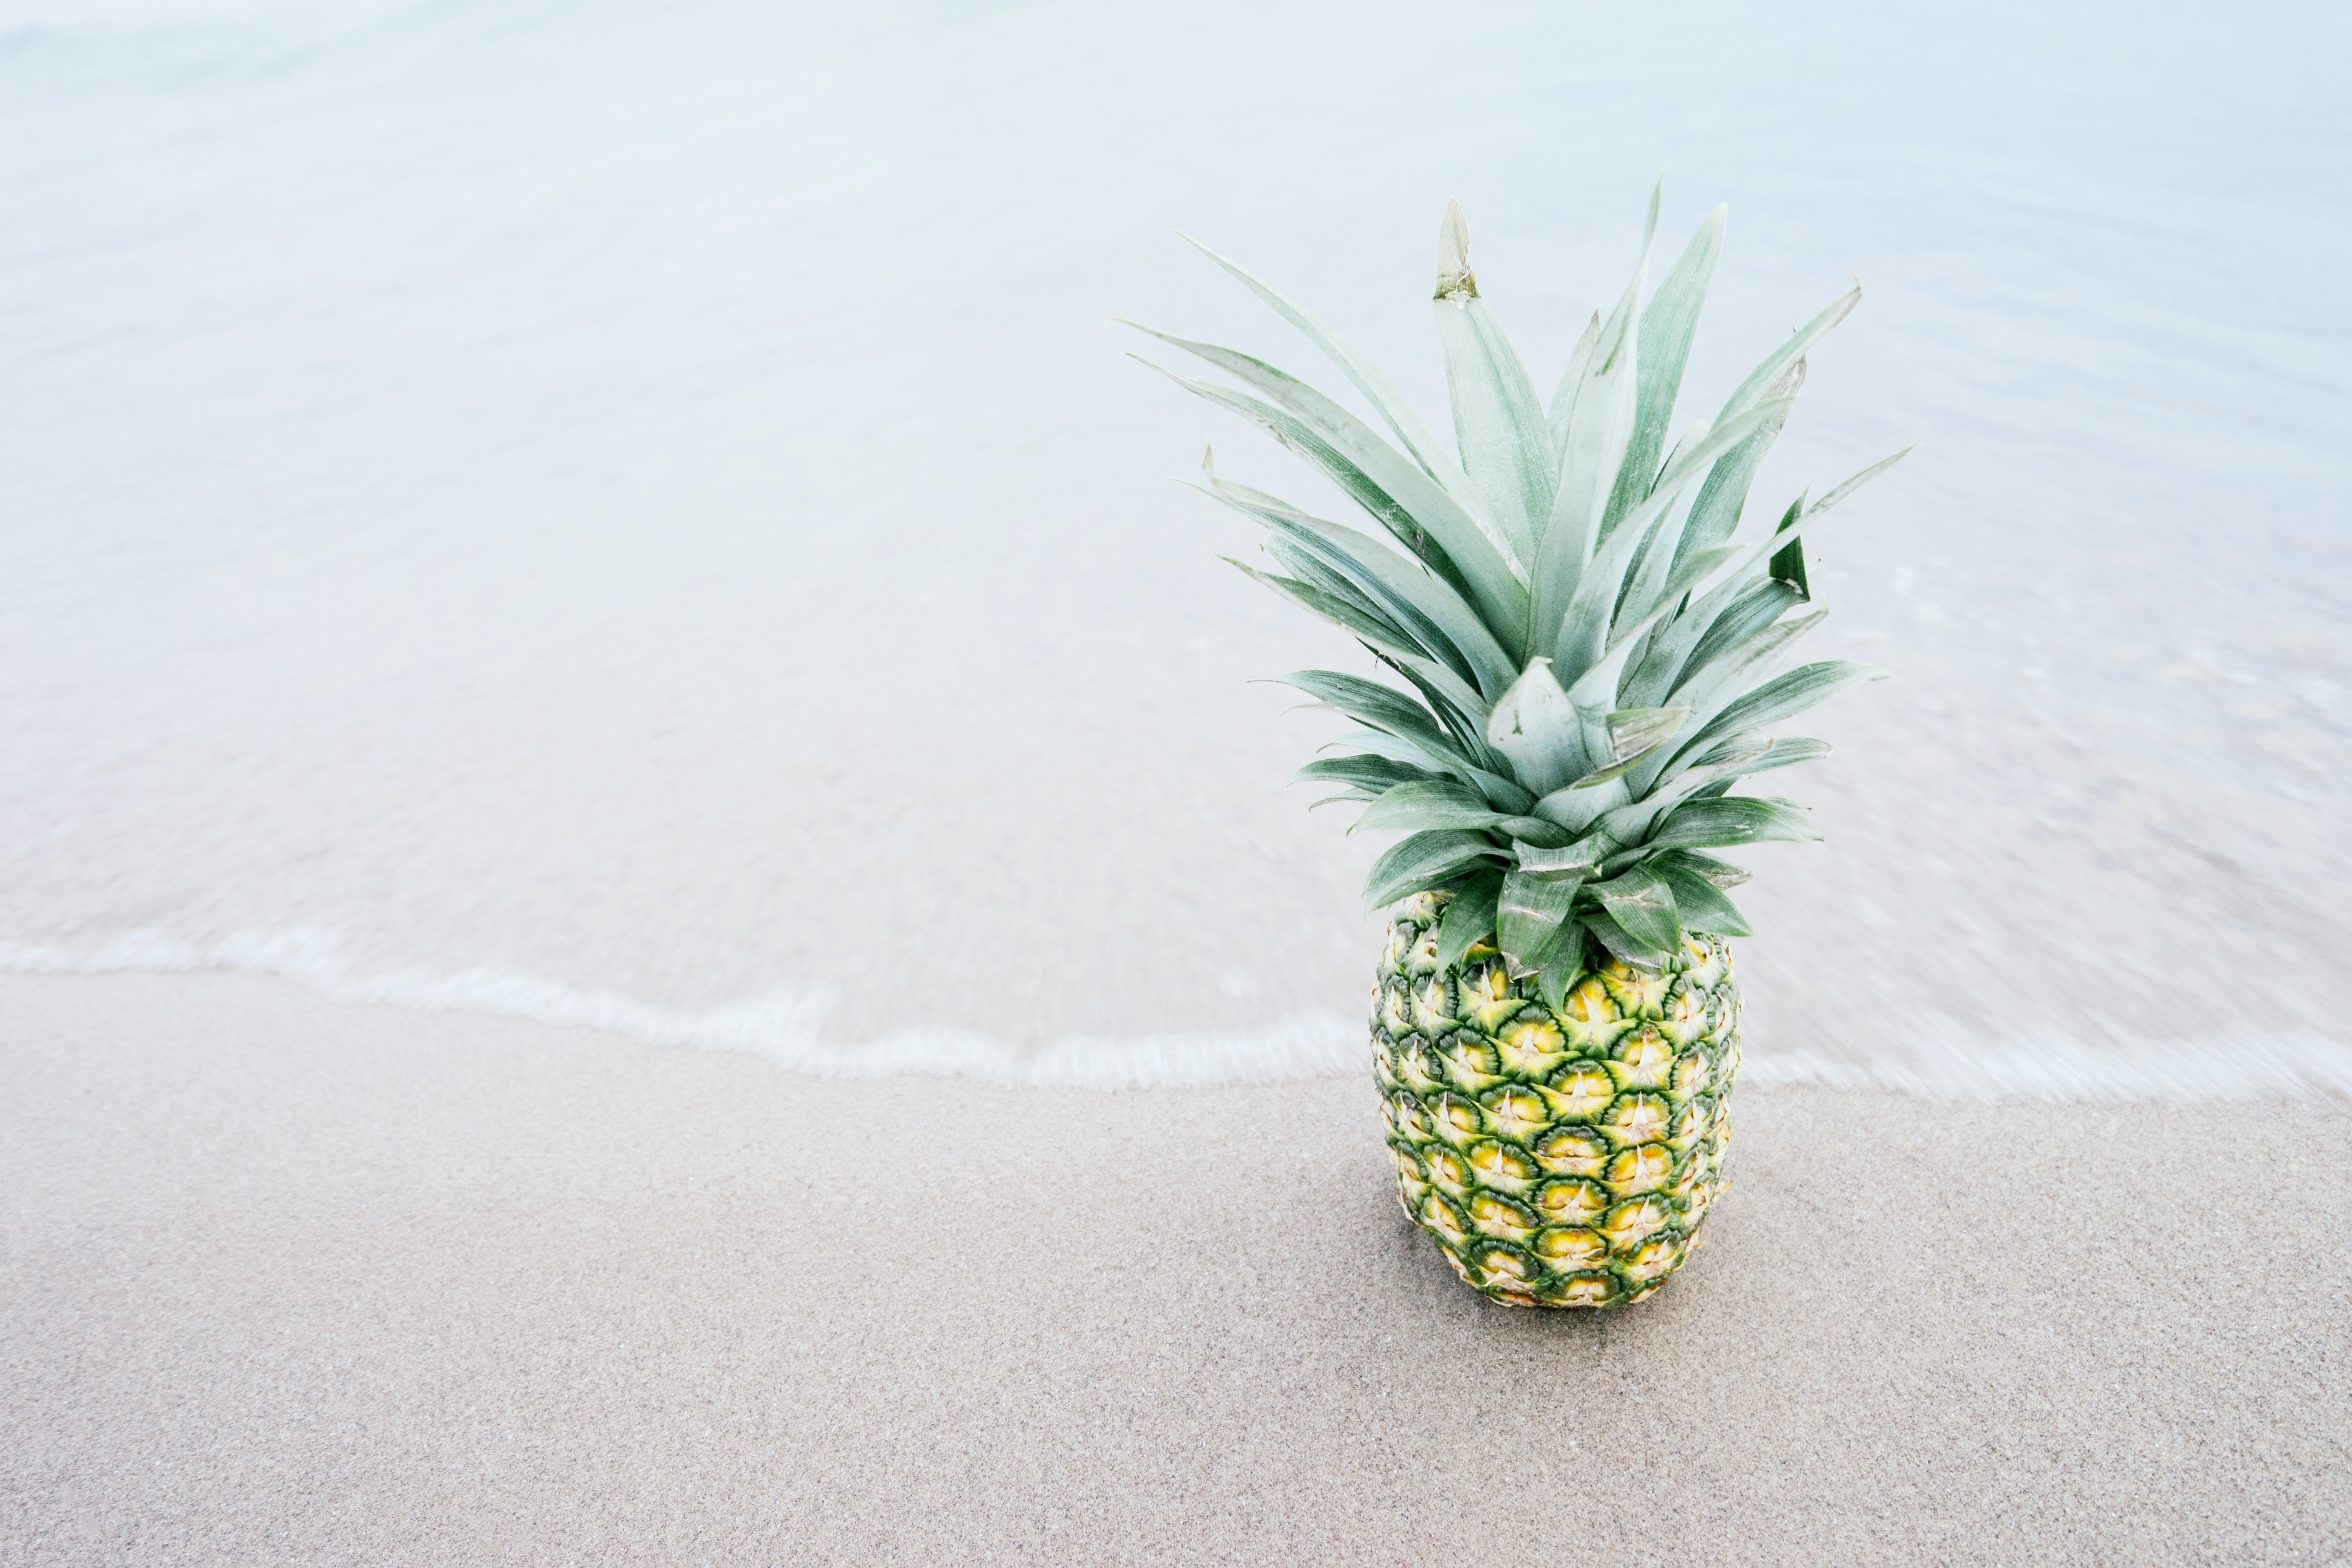 photography of pineapple fruit beside seashore during daytime